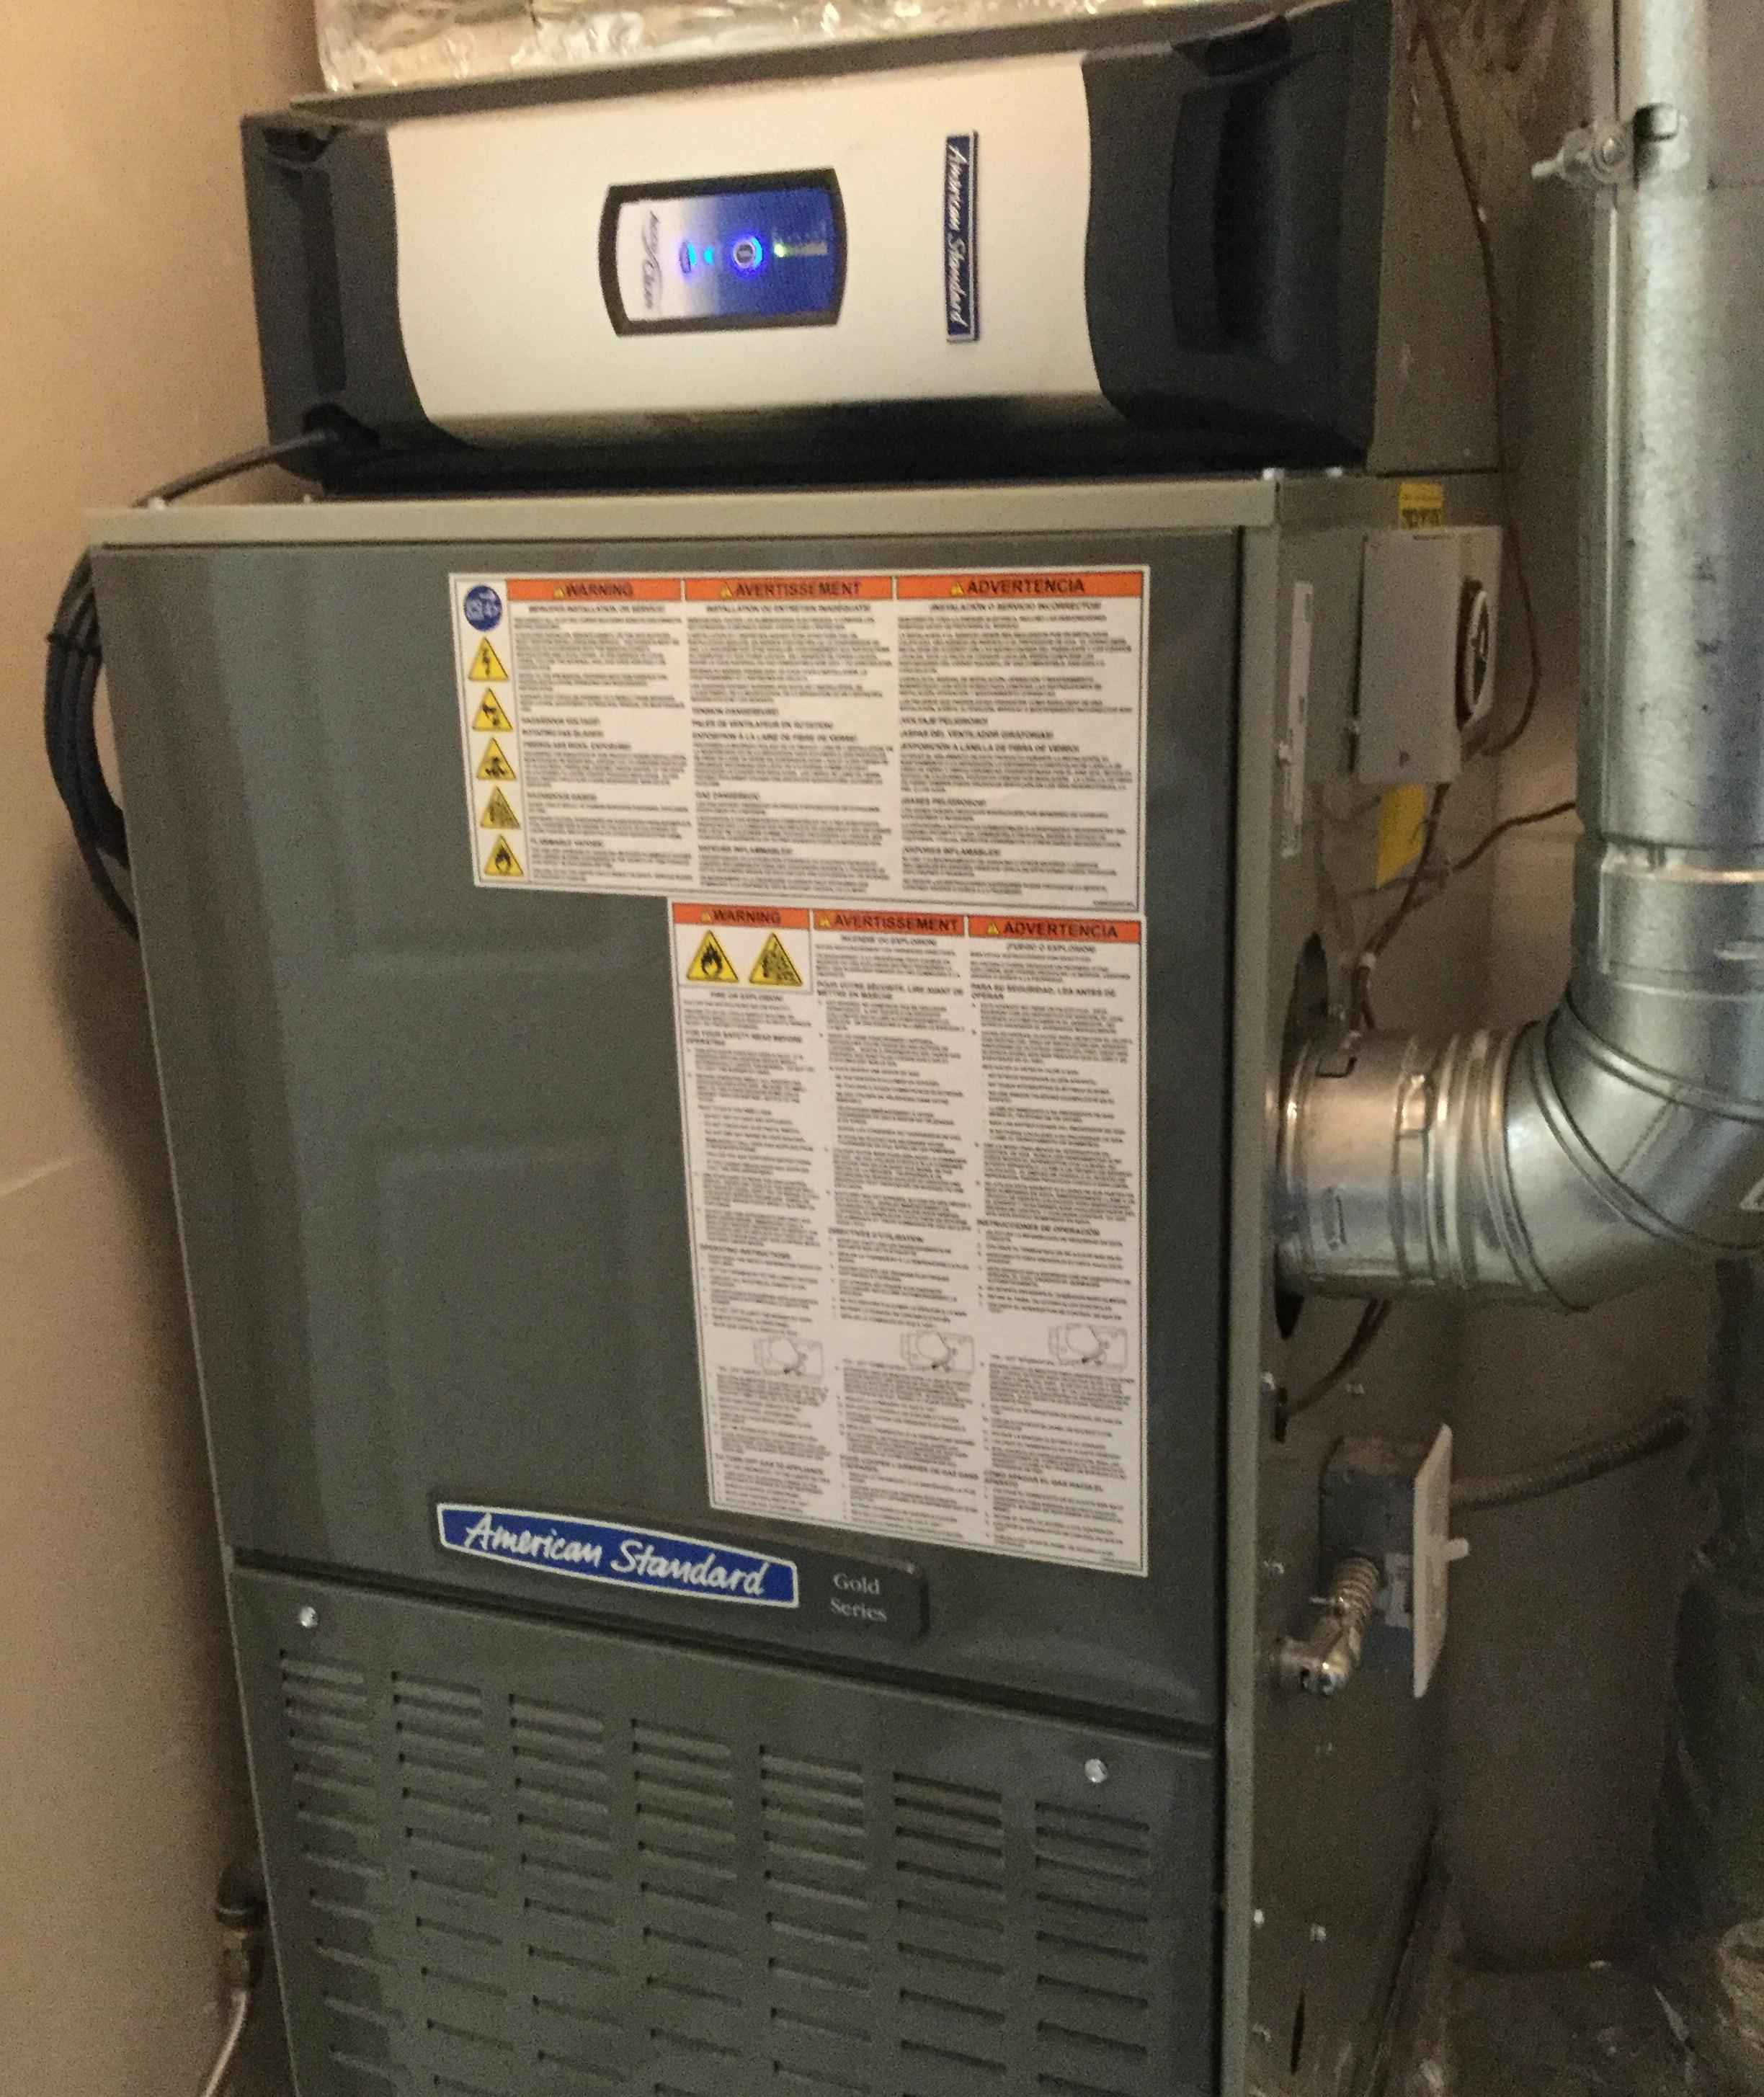 Gas Furnace Replacement in Federal Way, Wa (King County).